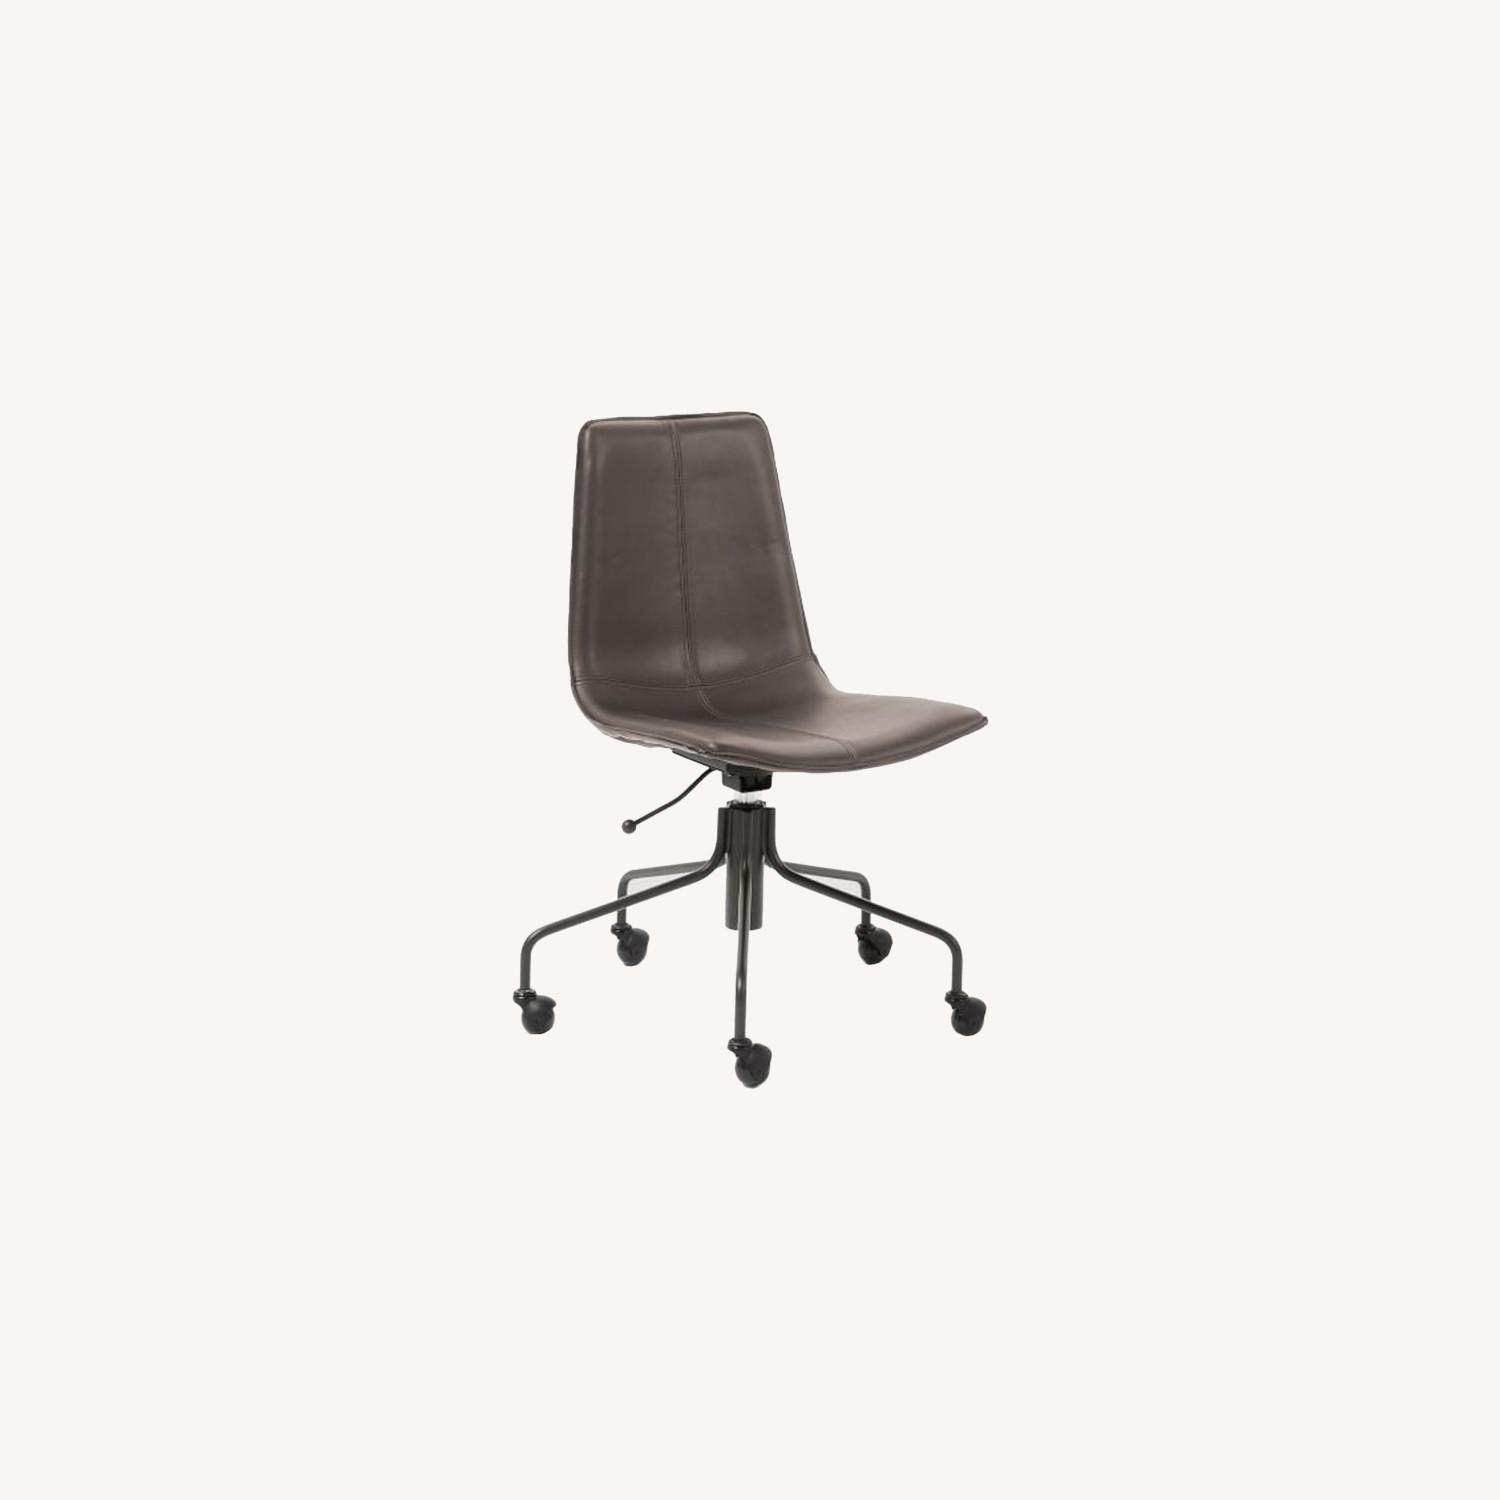 West Elm Slope Office Chair, Charcoal - image-0